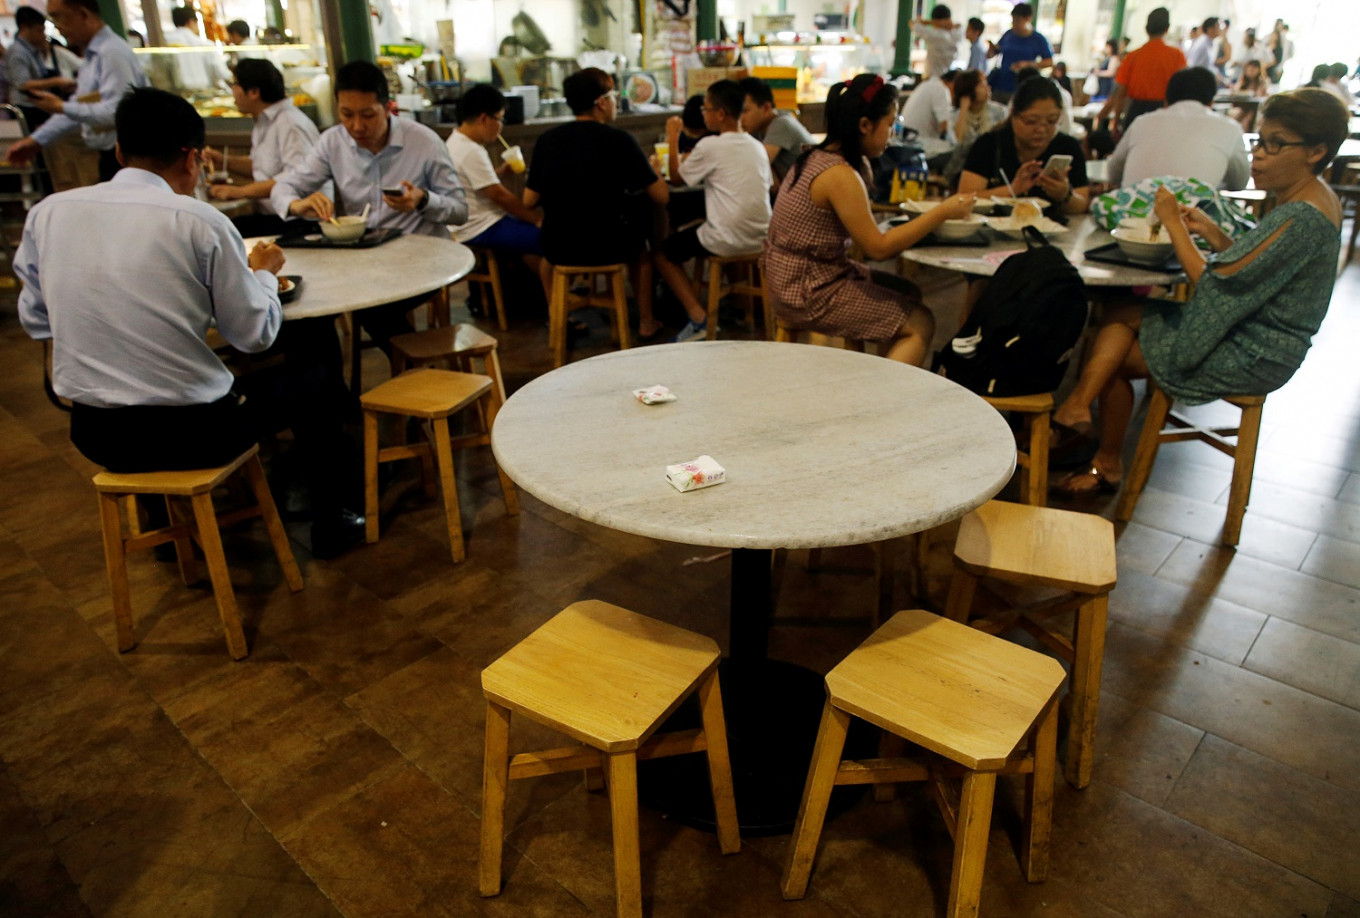 Singapore's foodie 'hawker' culture given UNESCO recognition